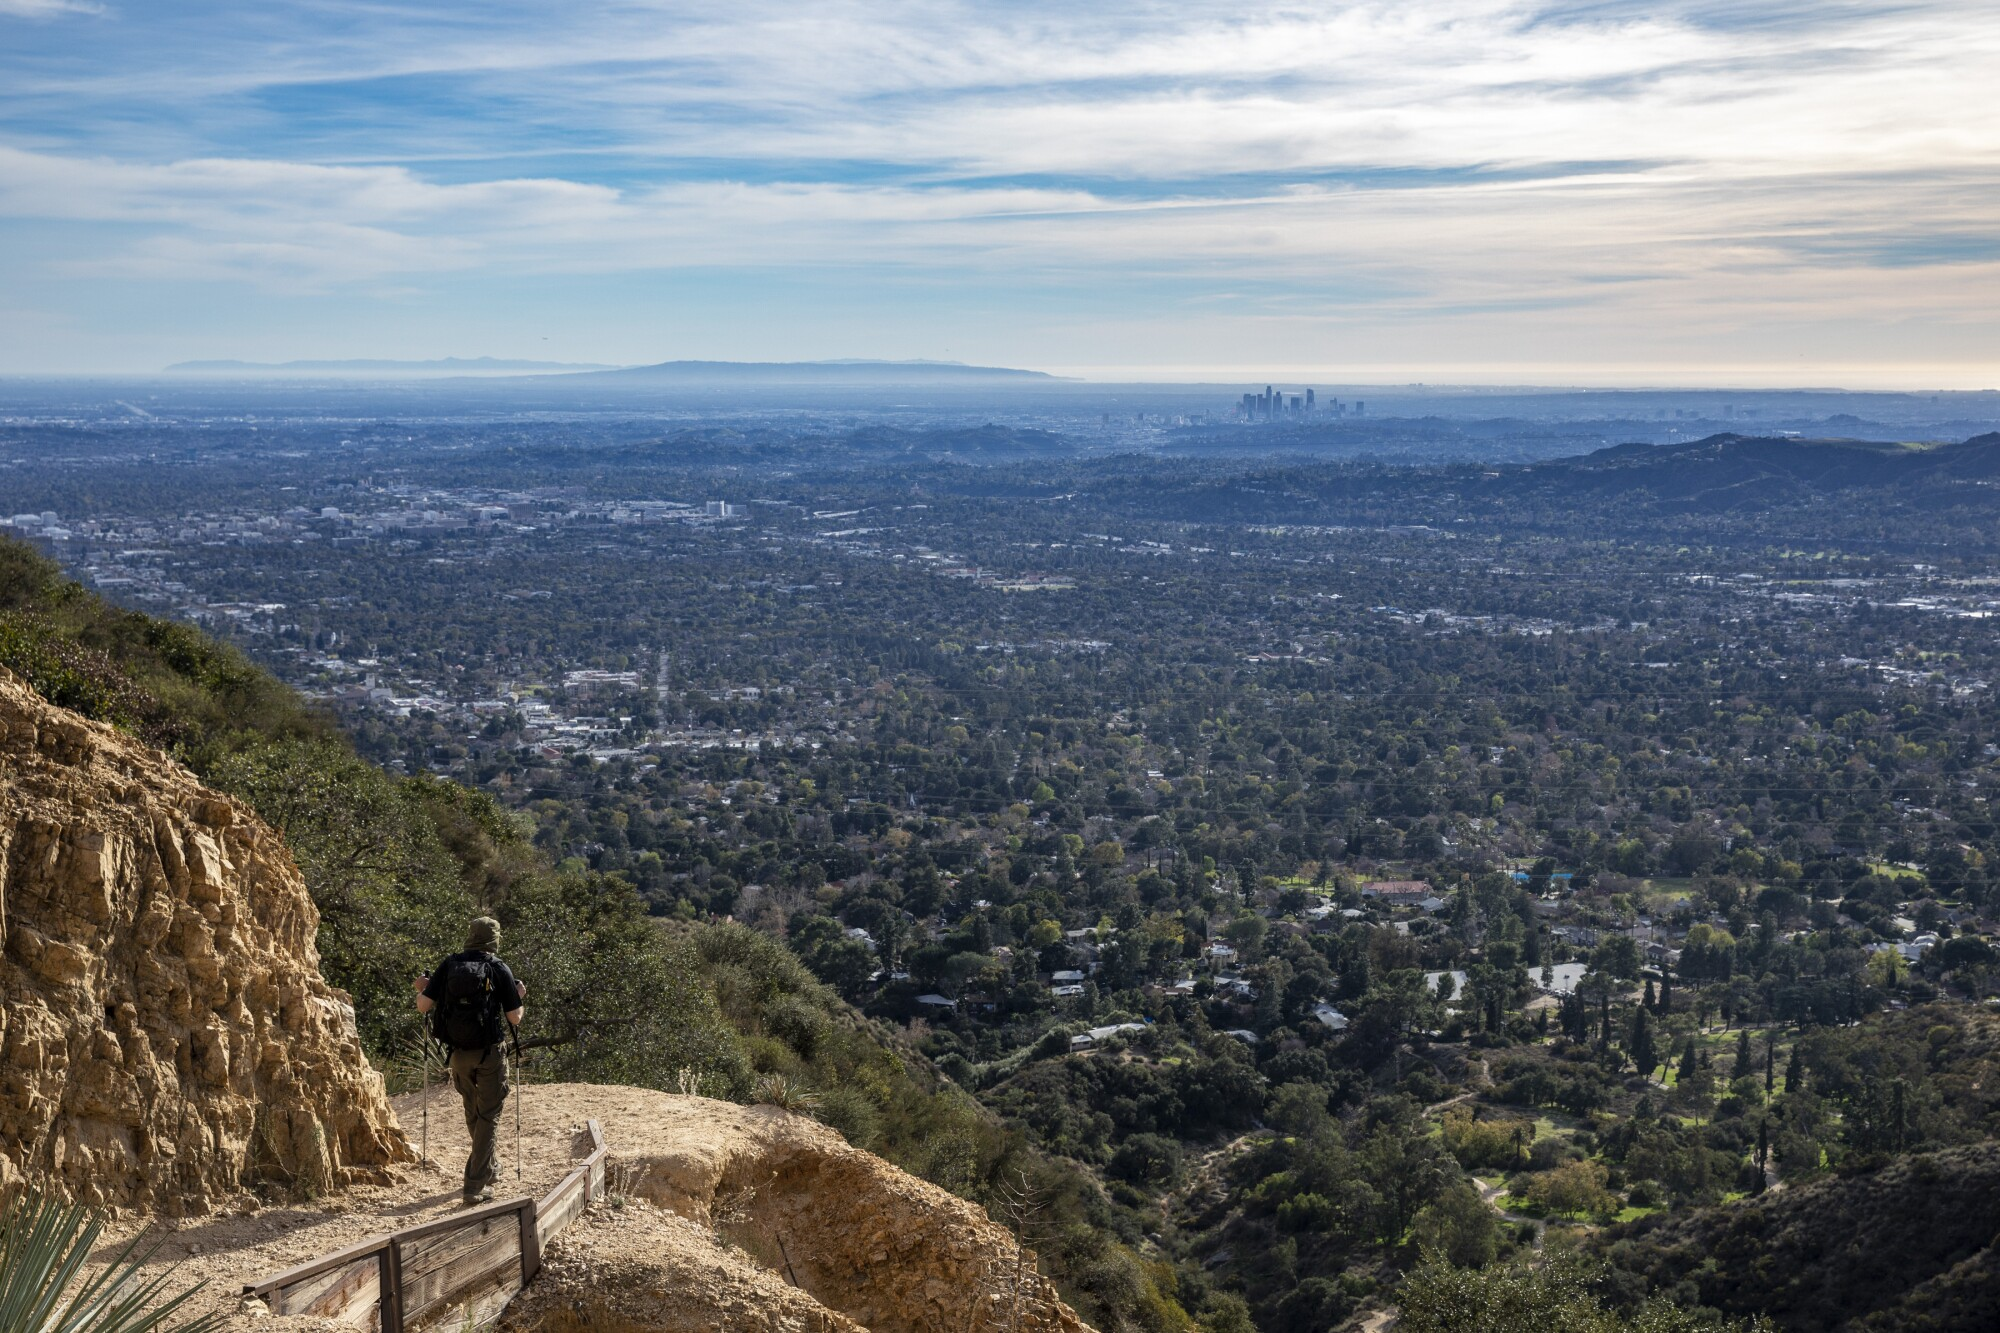 A hiker takes in the views from atop Echo Mountain.